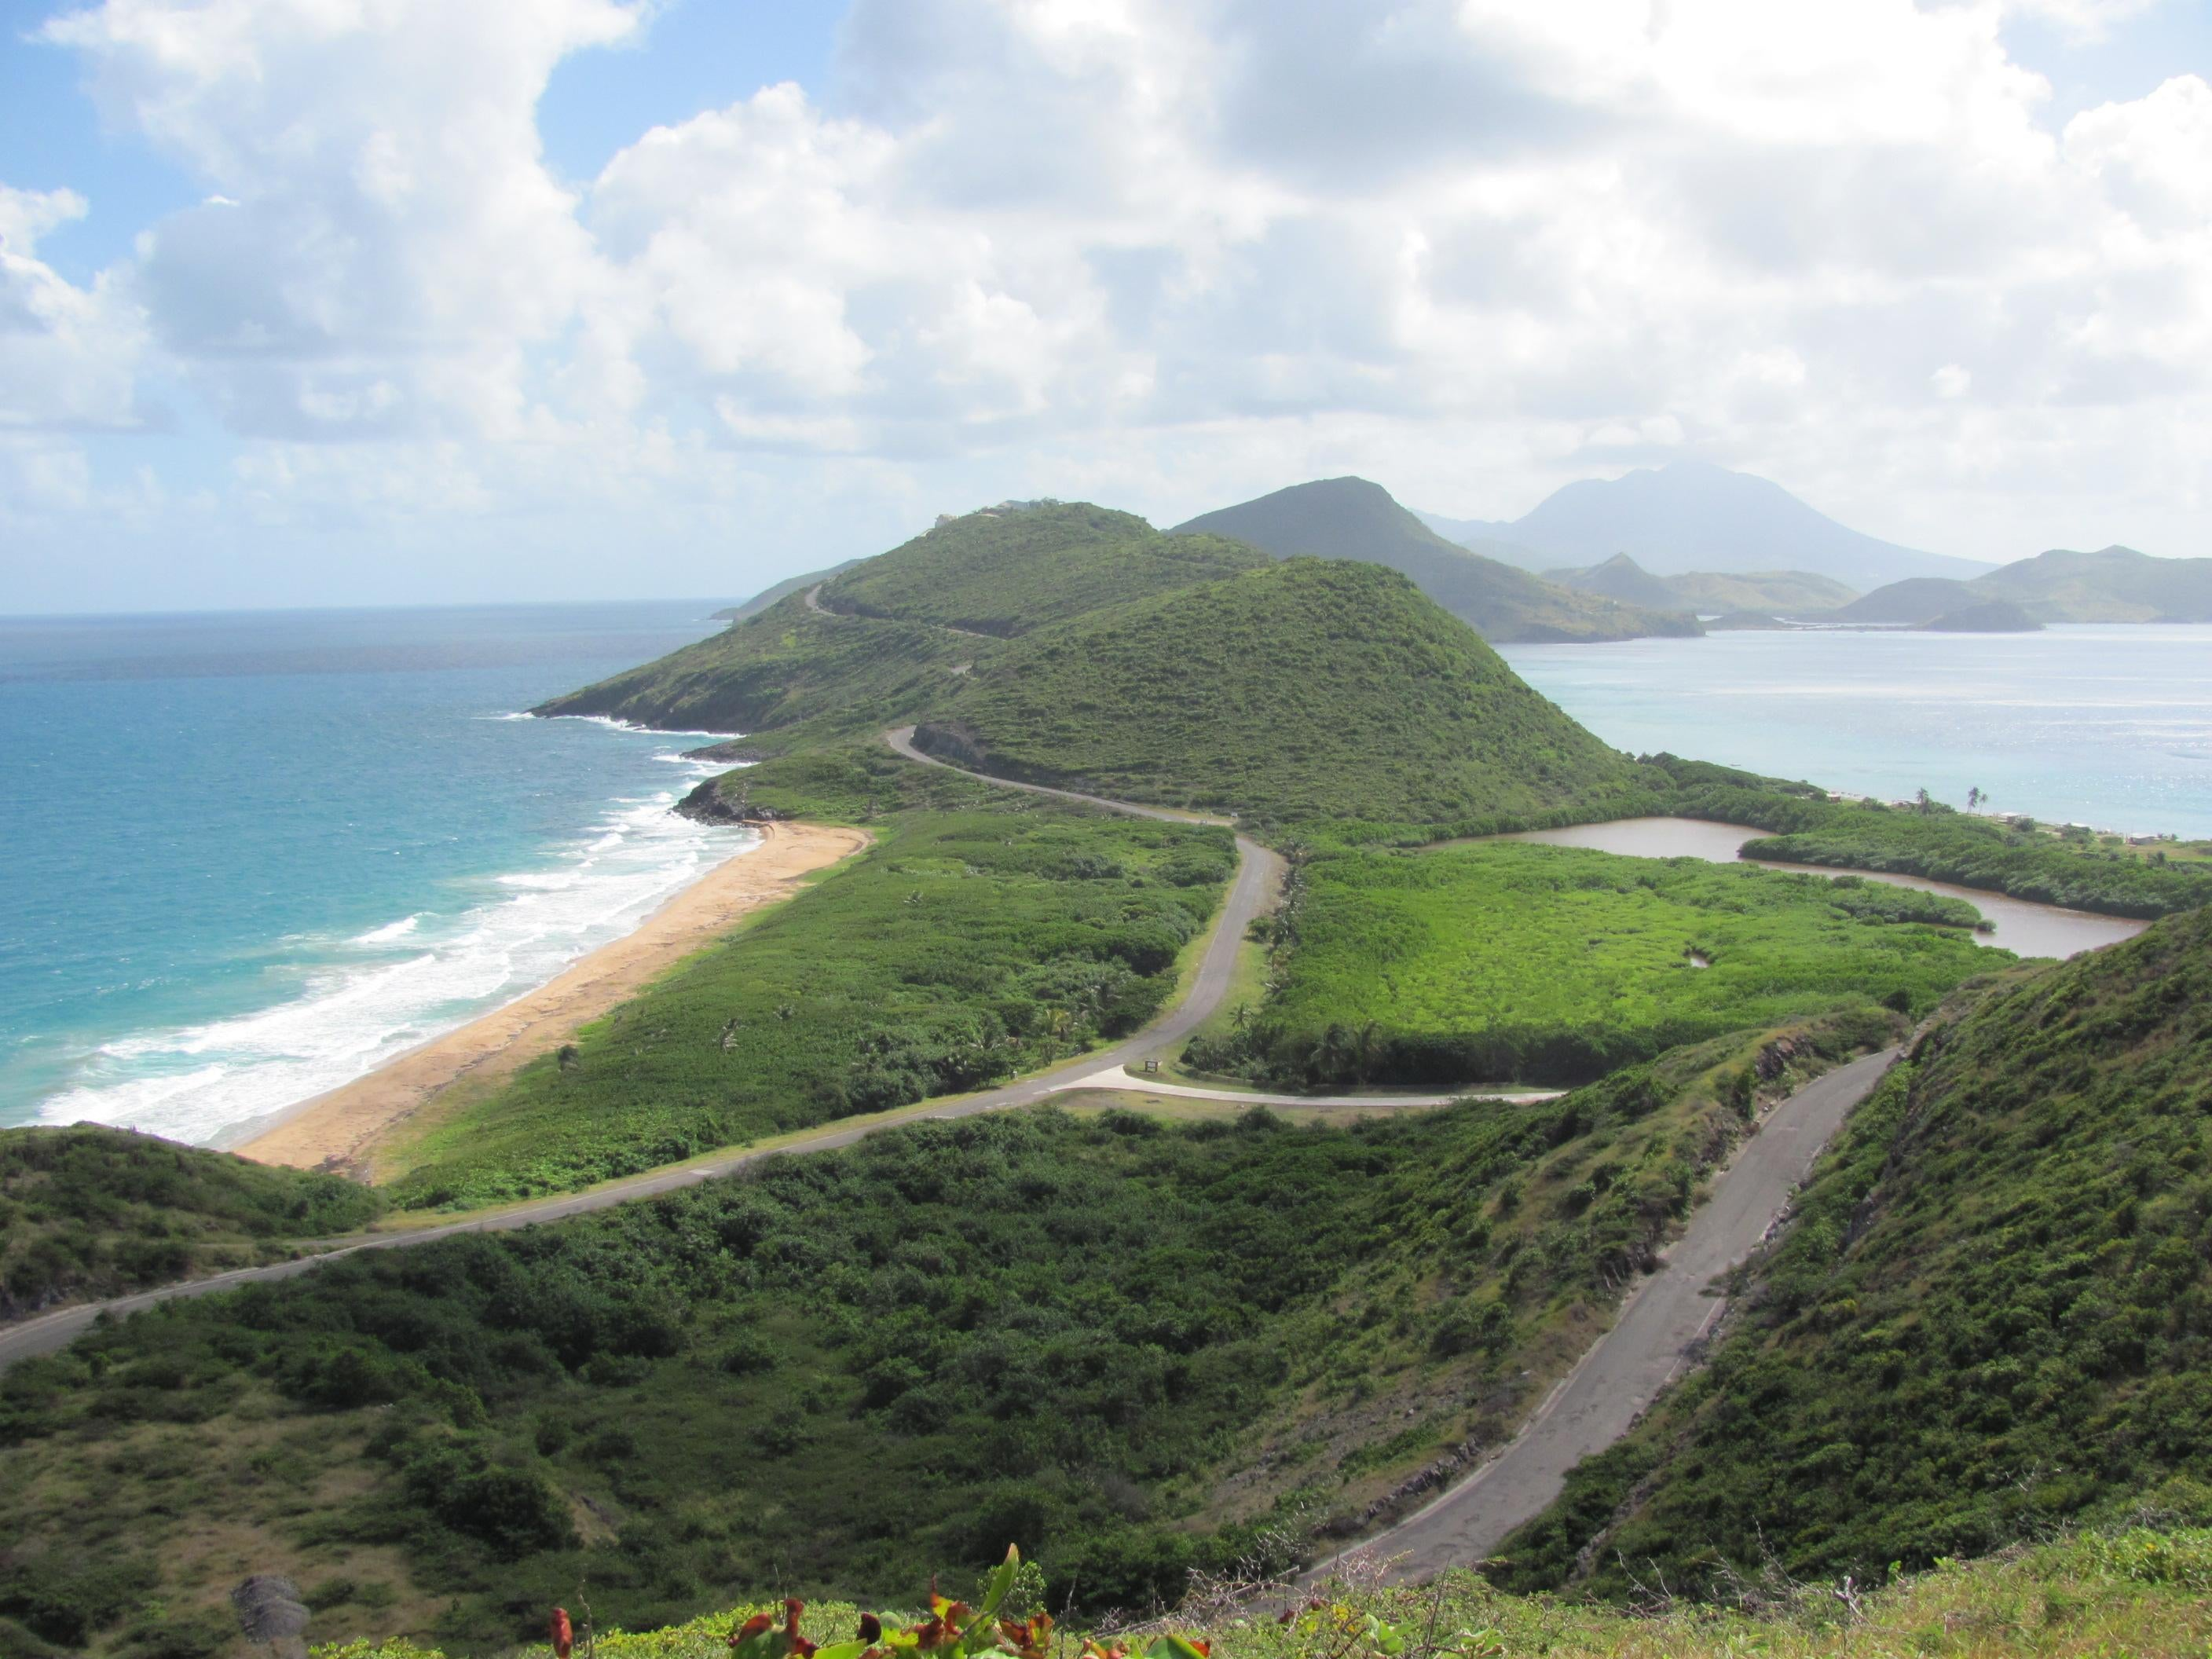 Coast in Saint Kitts and Nevis